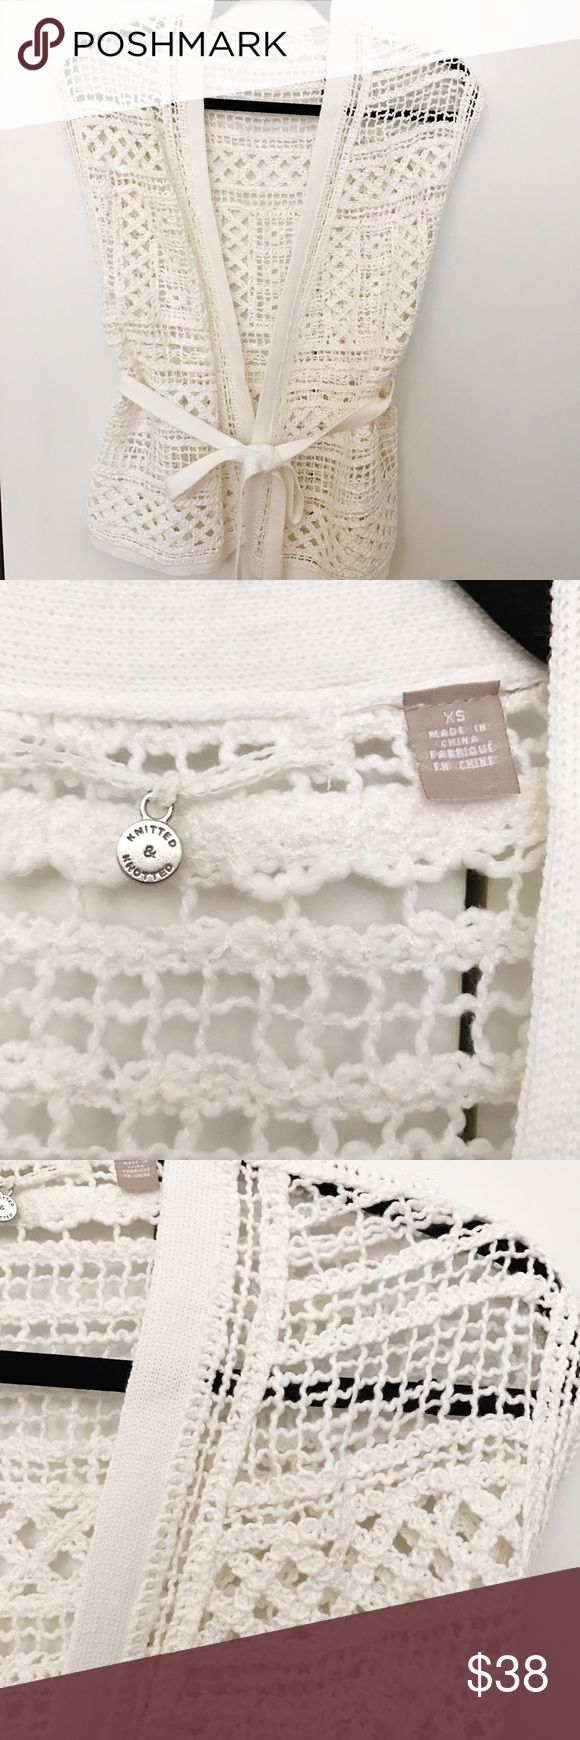 NWOT Anthropologie crochet knit cream sweater NWOT Anthropologie crochet knit cream sweater. Never worn but took the tags off. Also on merc! Anthropologie Sweaters